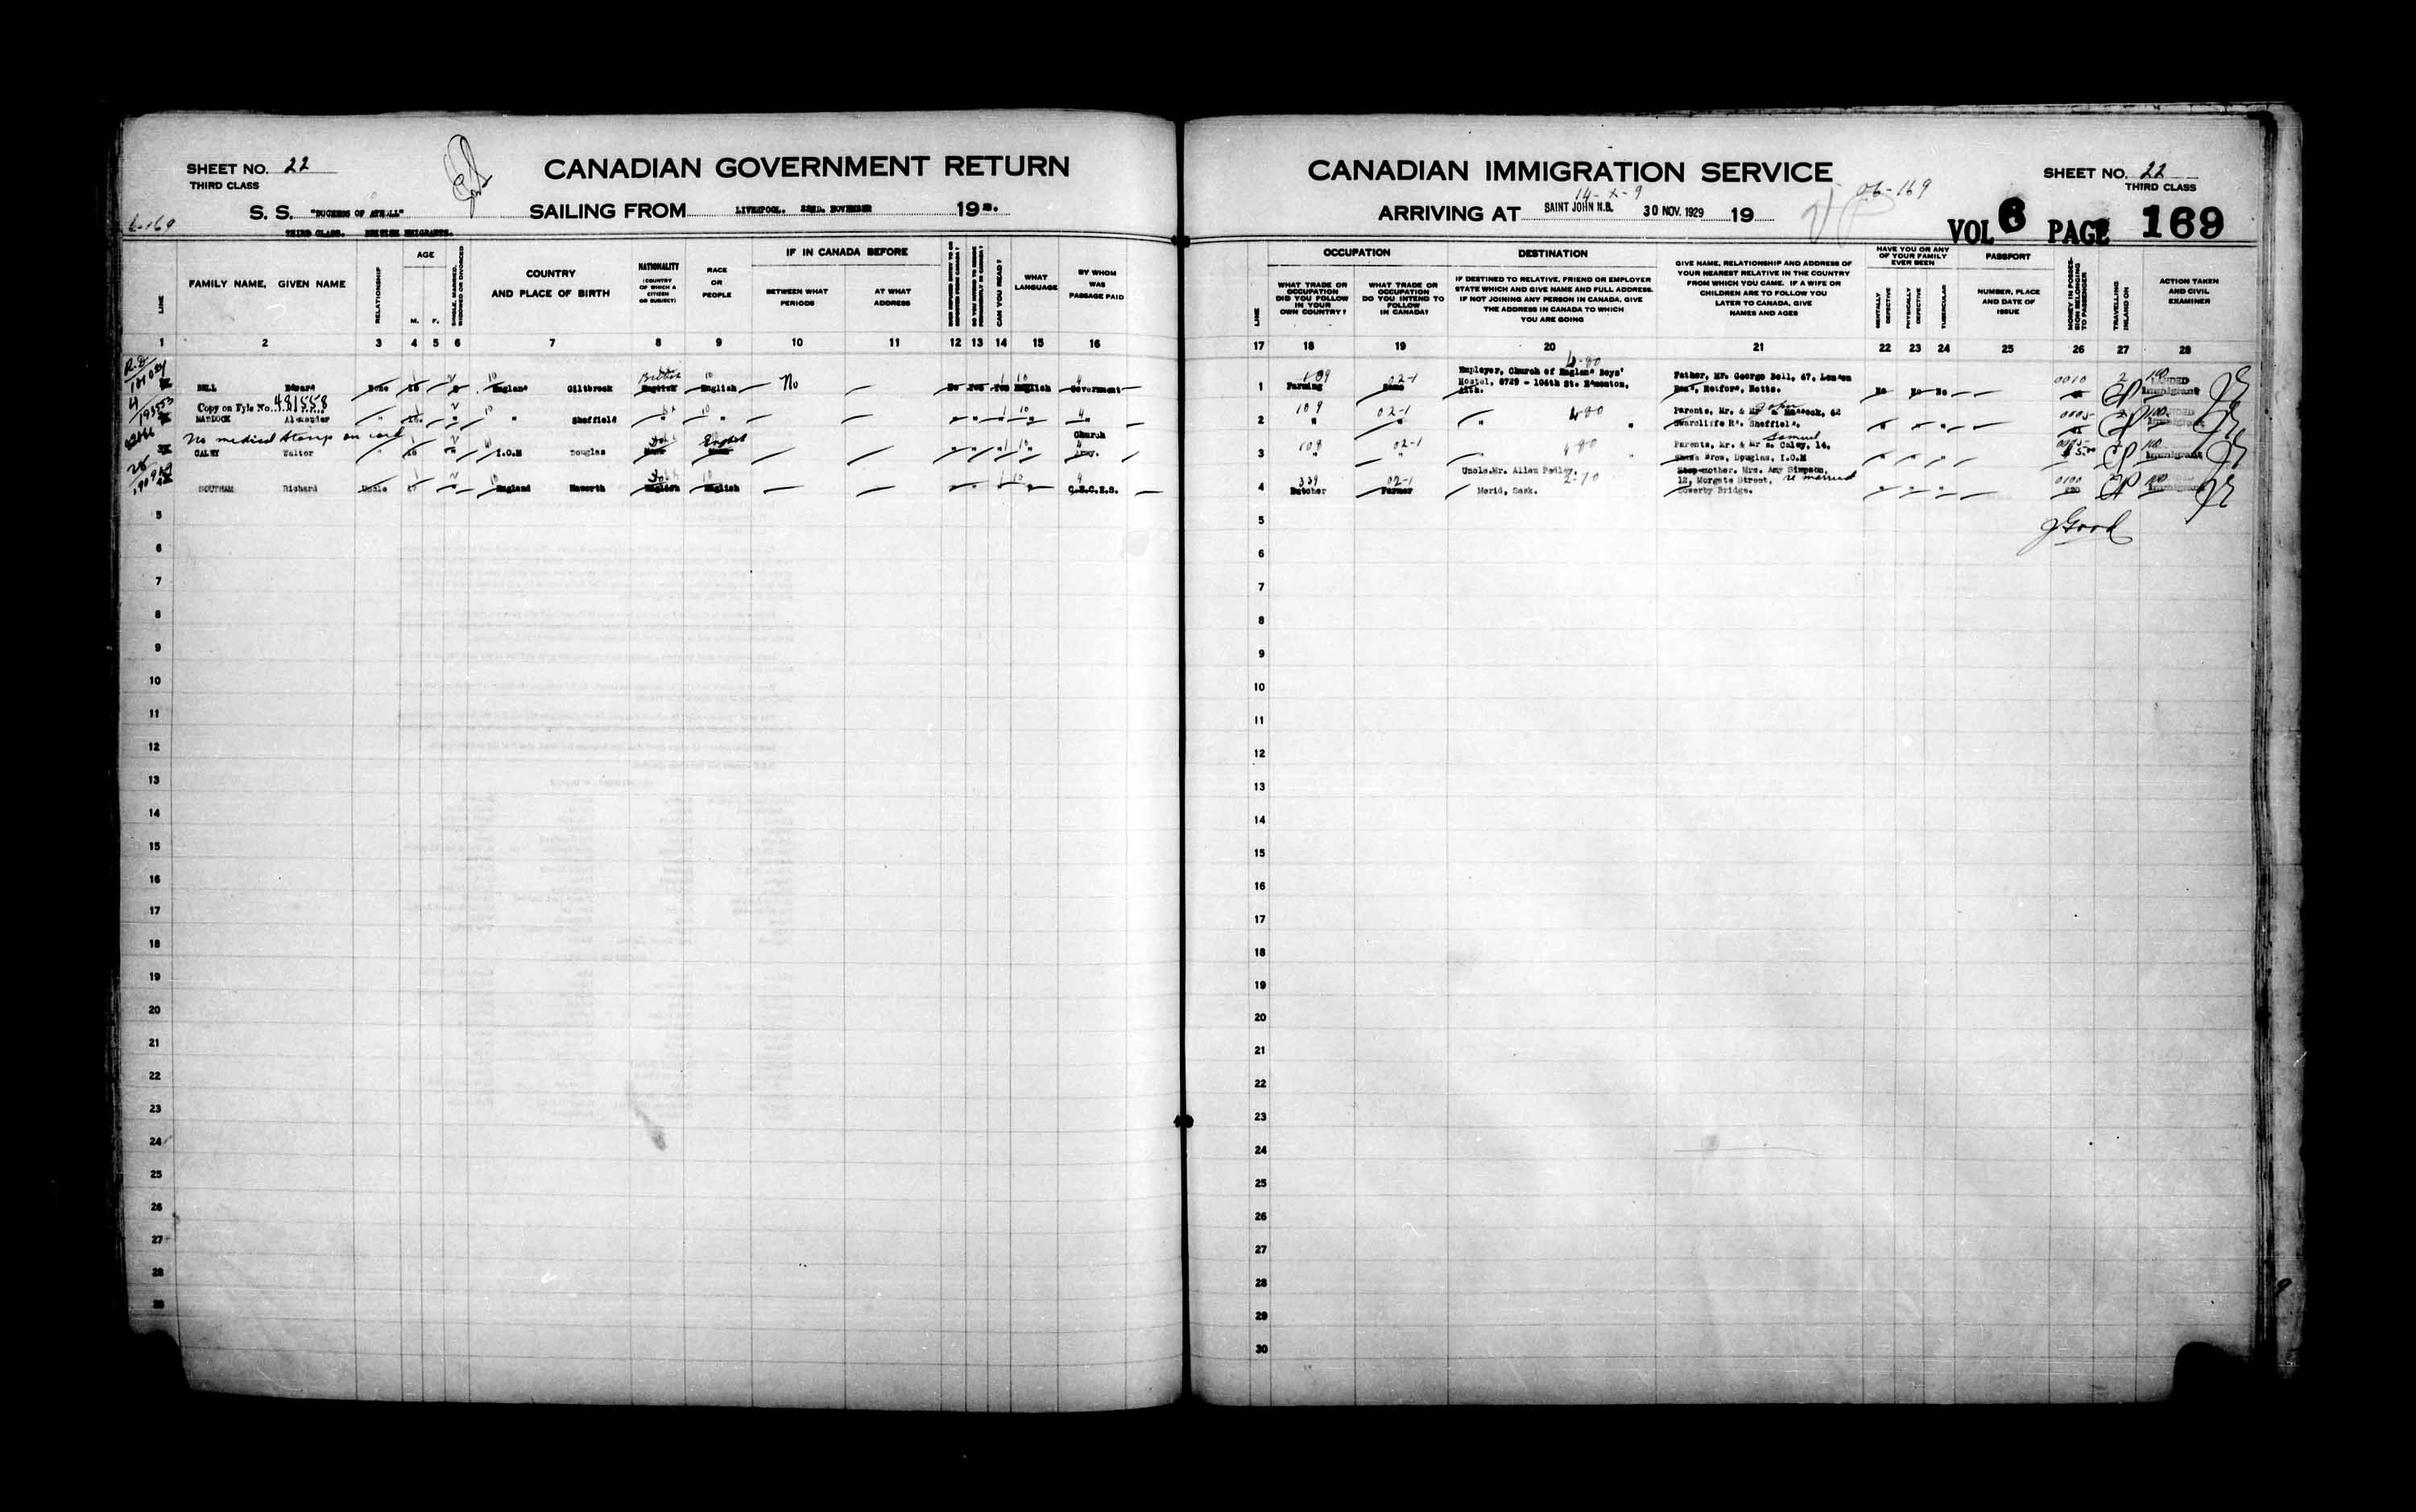 Title: Passenger Lists: Saint John (1925-1935) - Mikan Number: 134836 - Microform: t-14855